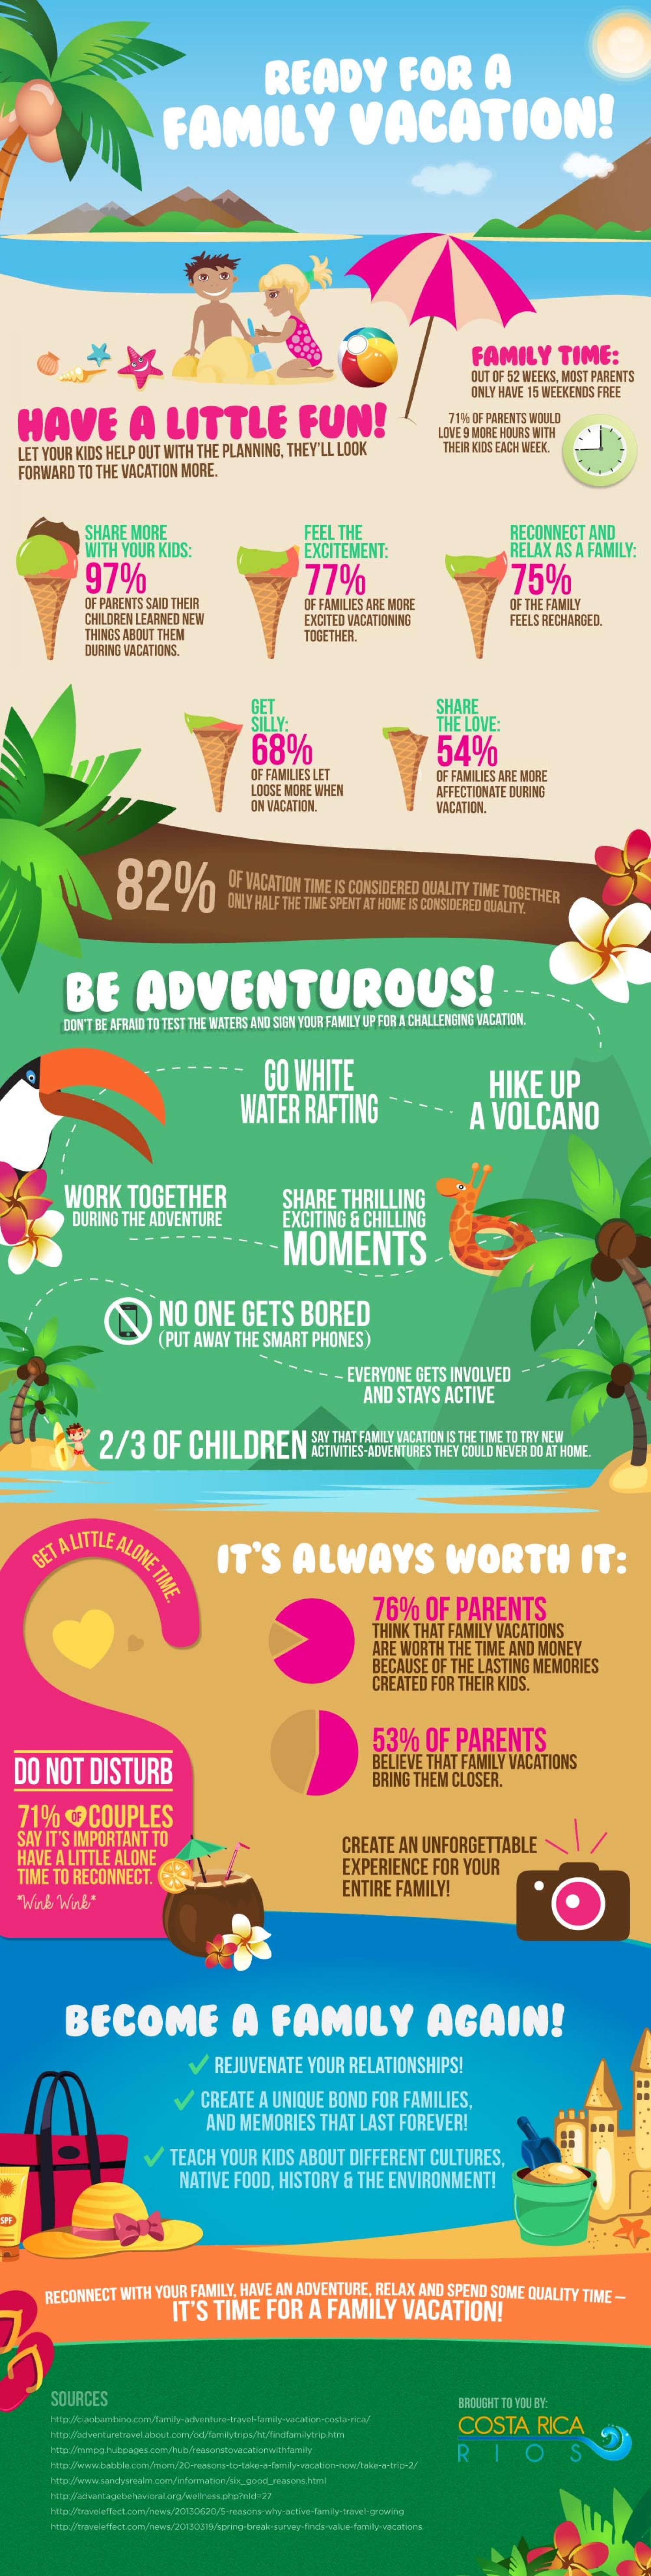 reconnect-with-your-family-on-vacation_53970a921f706_w1500